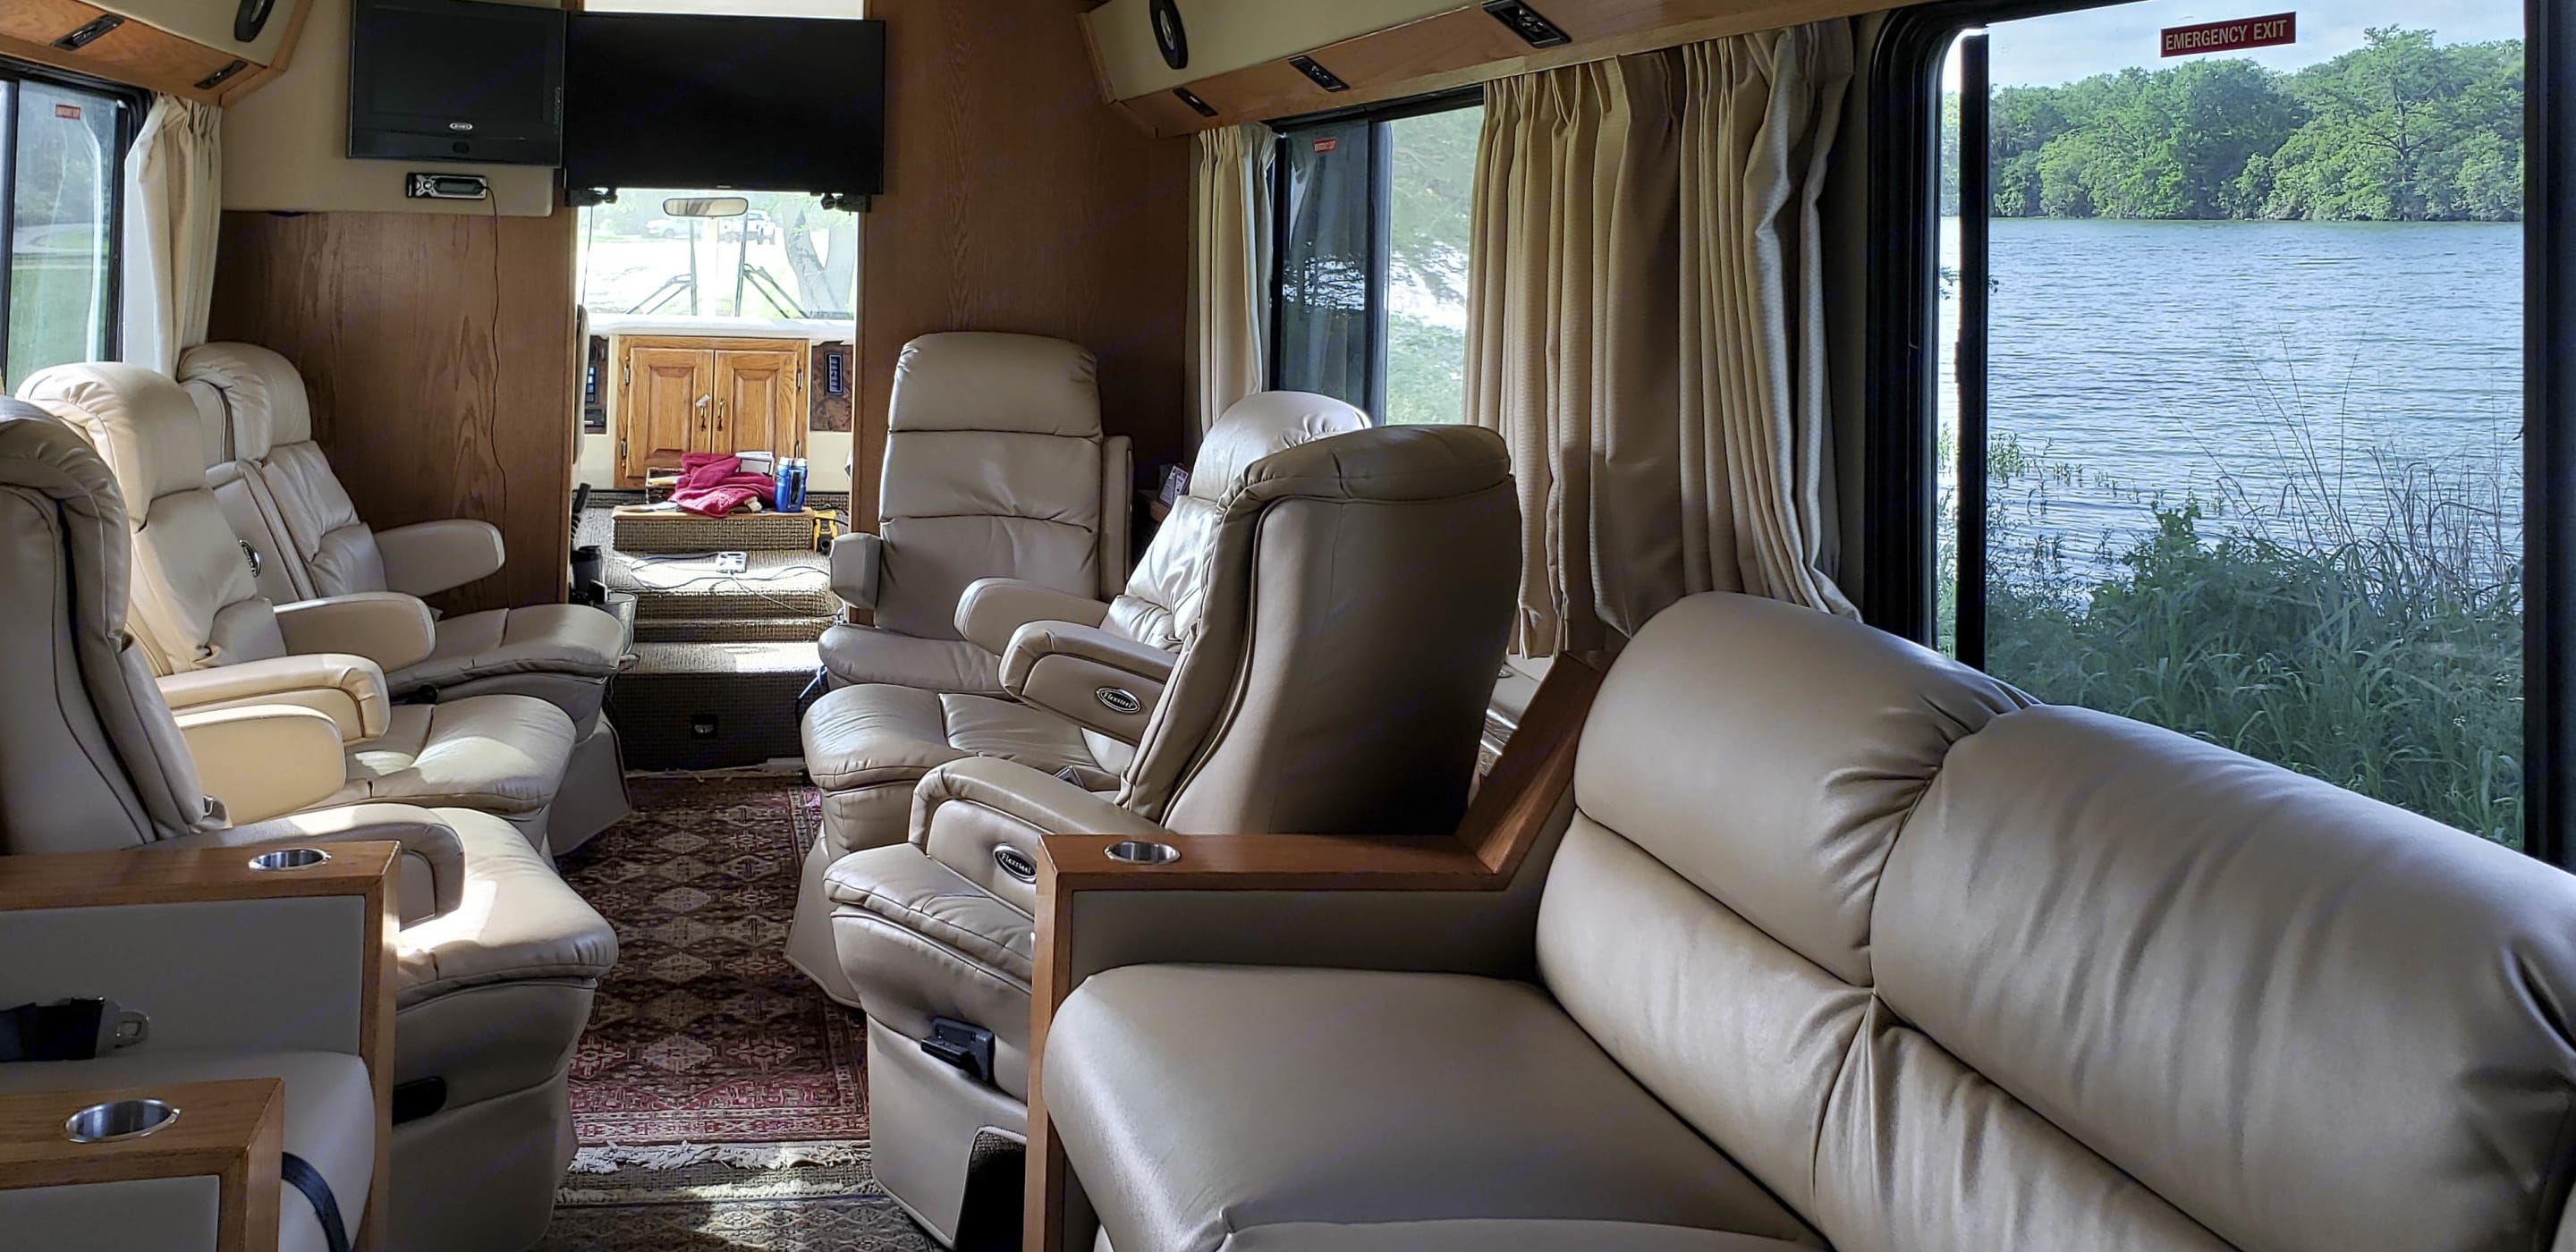 This Airstream Land Yacht was fully customized by Airstream before it ever became an RV. The interior was designed for an executive client who wanted it to resemble the inside of an executive jet. It seats 12 passengers. Has 6 Flexsteel reclining bucket seats, 1 fold out couch, and a 3 theater style seats facing the couch.. Airstream Land Yacht 1999